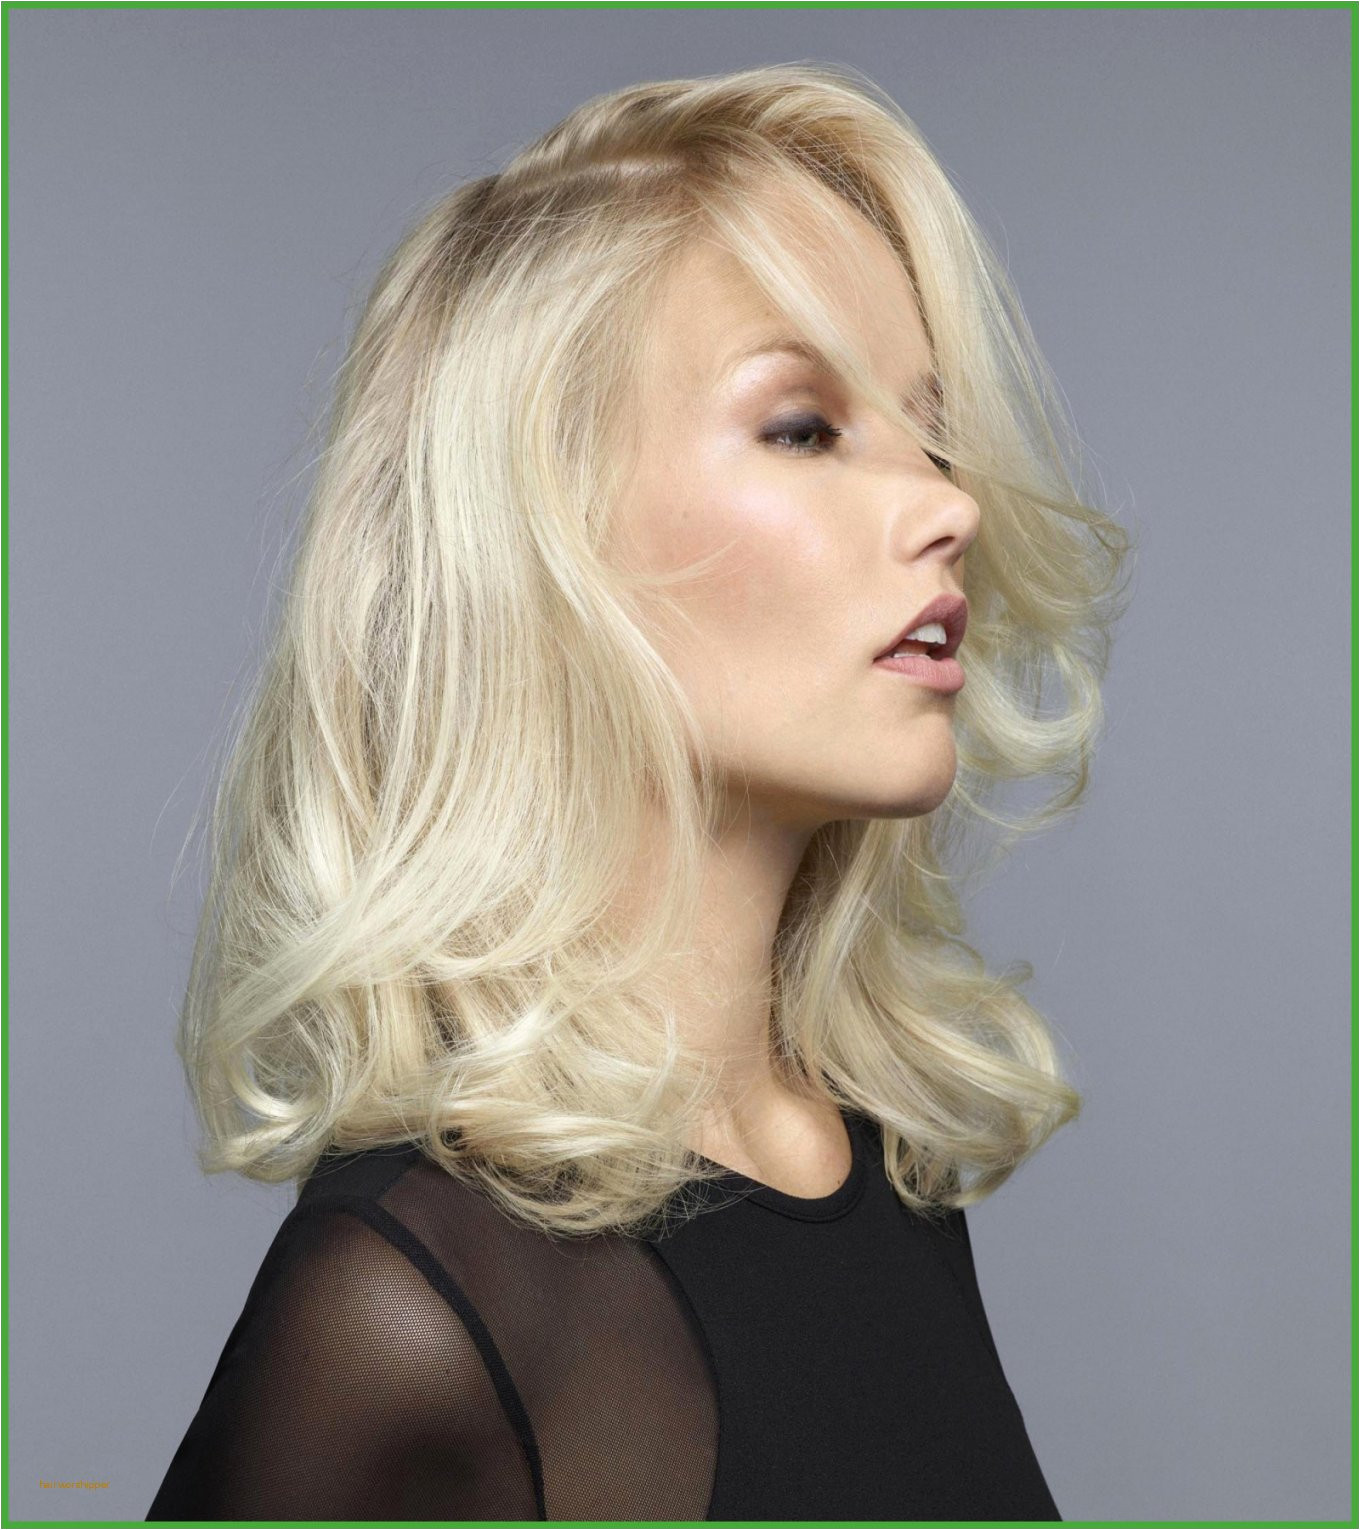 Hairstyles for Chin Length Curly Hair Luxury Haircuts for Medium Length Curly Hair